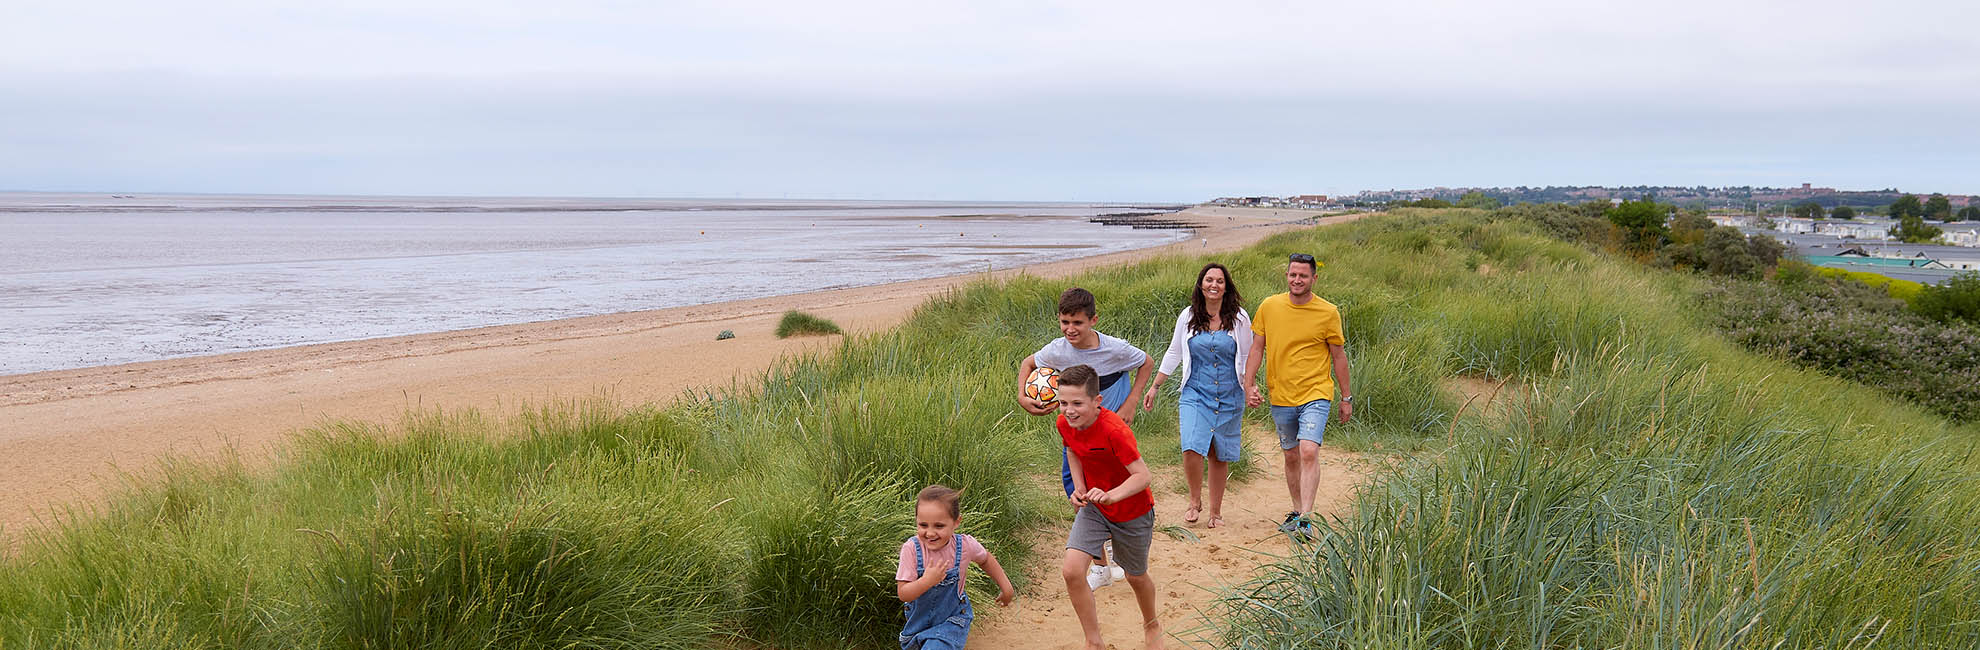 Little girl walking through the sand dunes at Heacham Beach